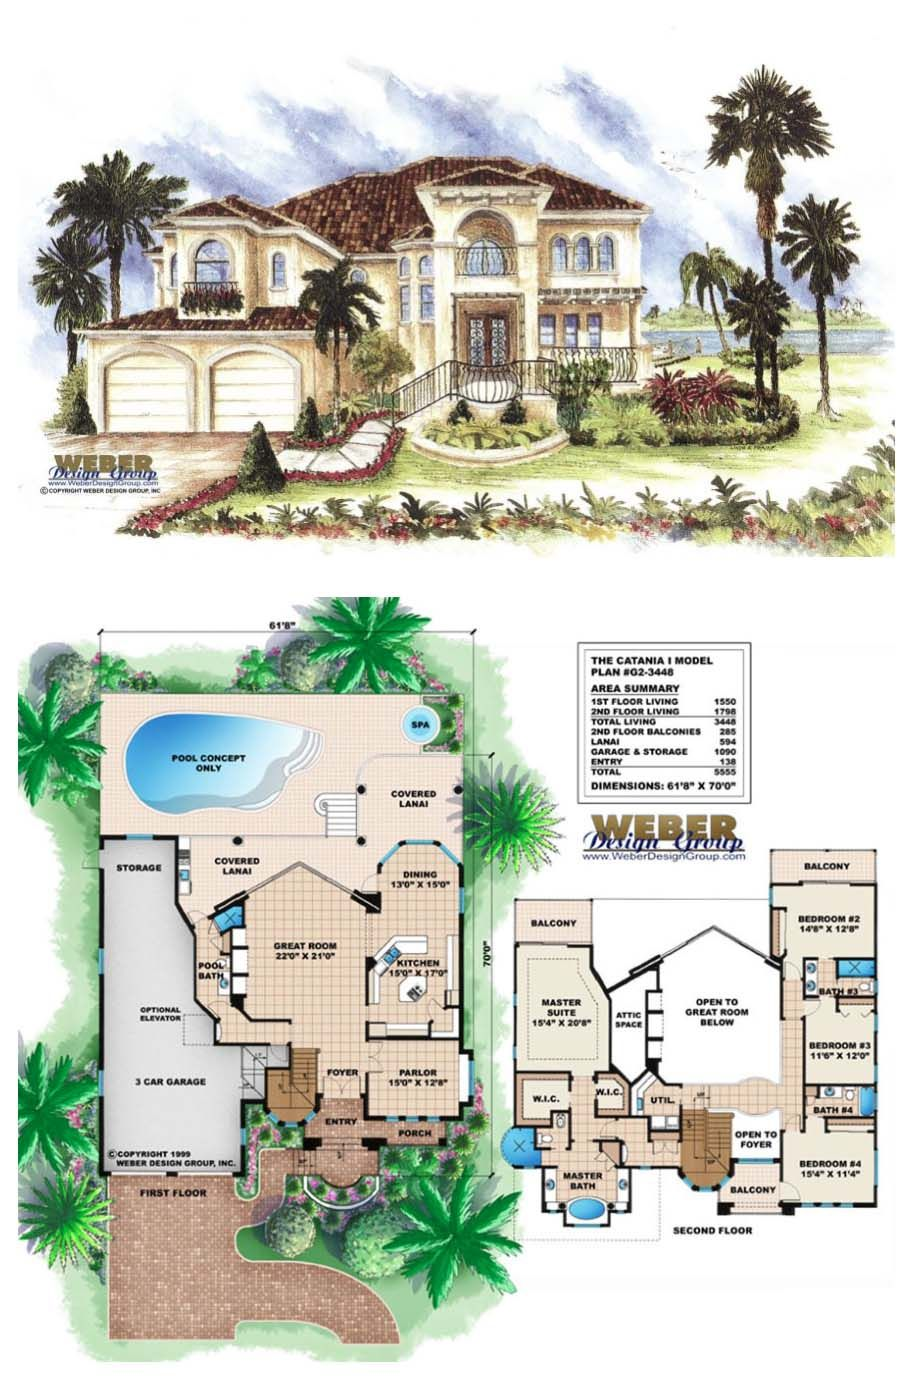 Mediterranean House Plan 2 Story Luxury Home Floor Plan With Pool Mediterranean House Plans Luxury House Plans My House Plans